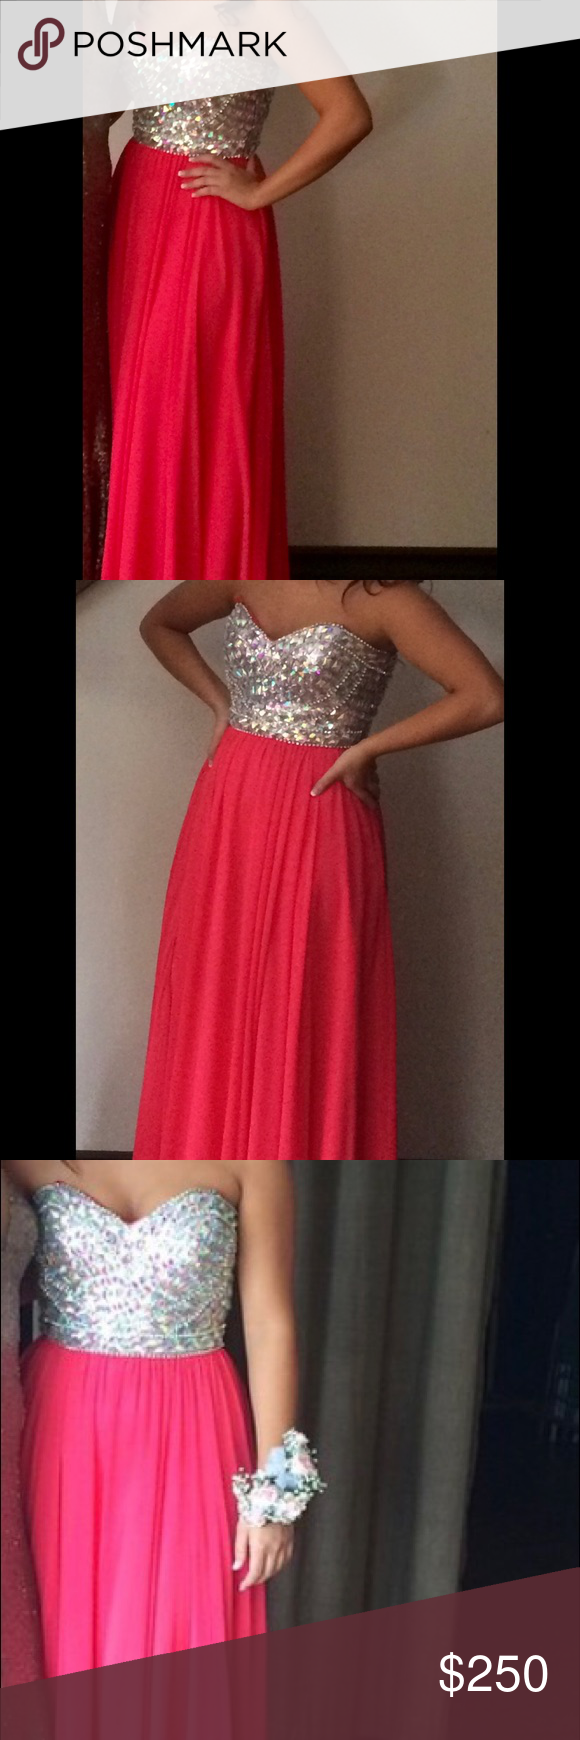 Hot pink prom dress with bedazzled bodice bodice hot pink and